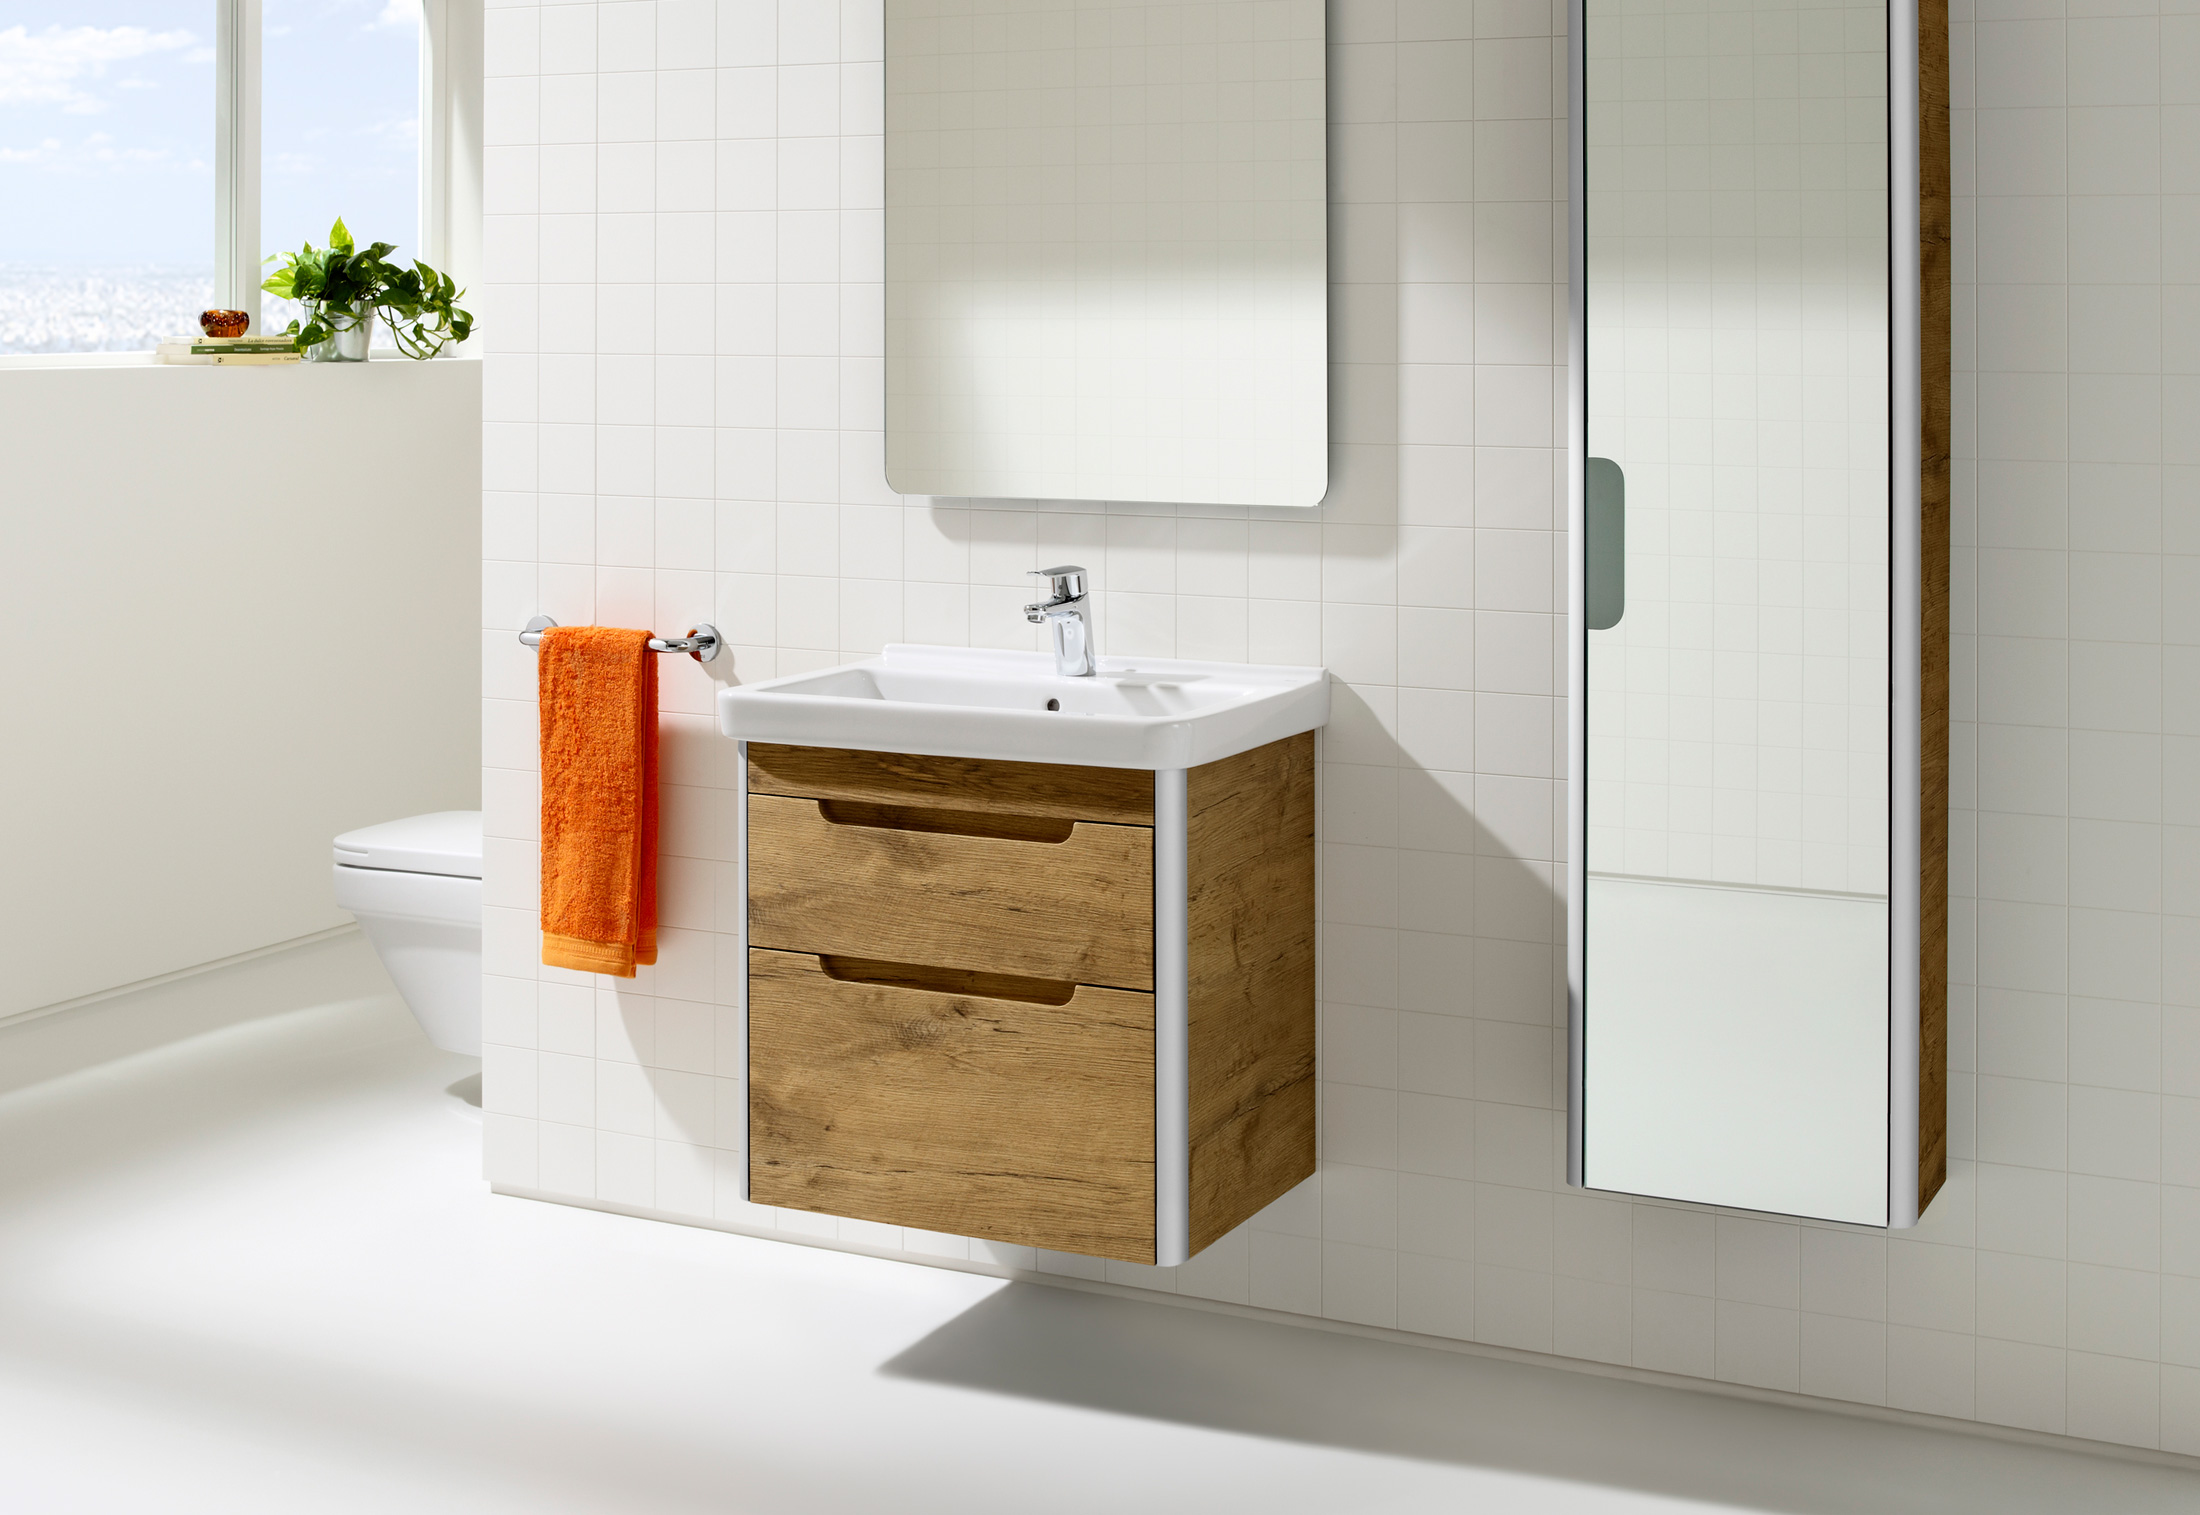 Dama wash basin with vanity unit by Roca | STYLEPARK